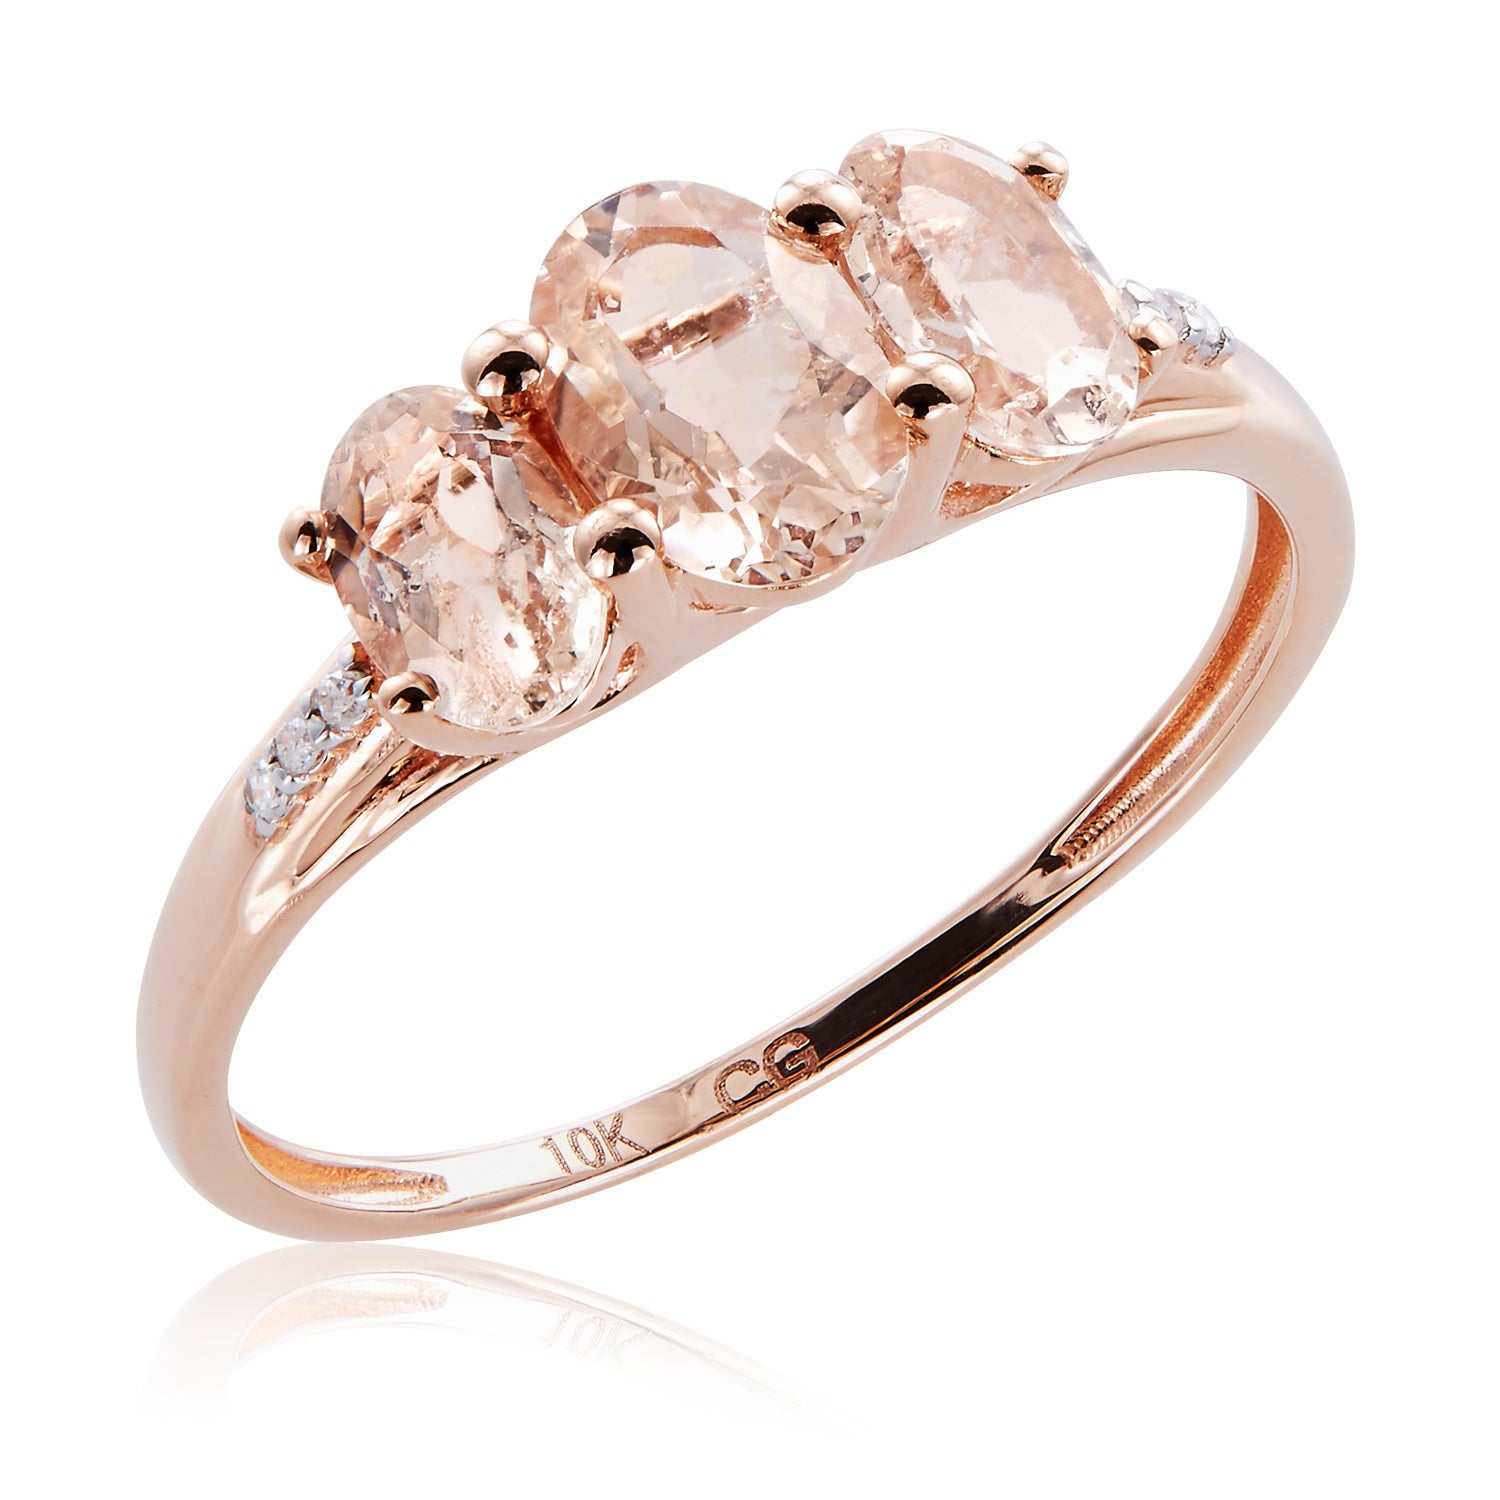 Diamond Wedding Band in 10K Pink Gold Size-9 G-H,I2-I3 1//6 cttw,